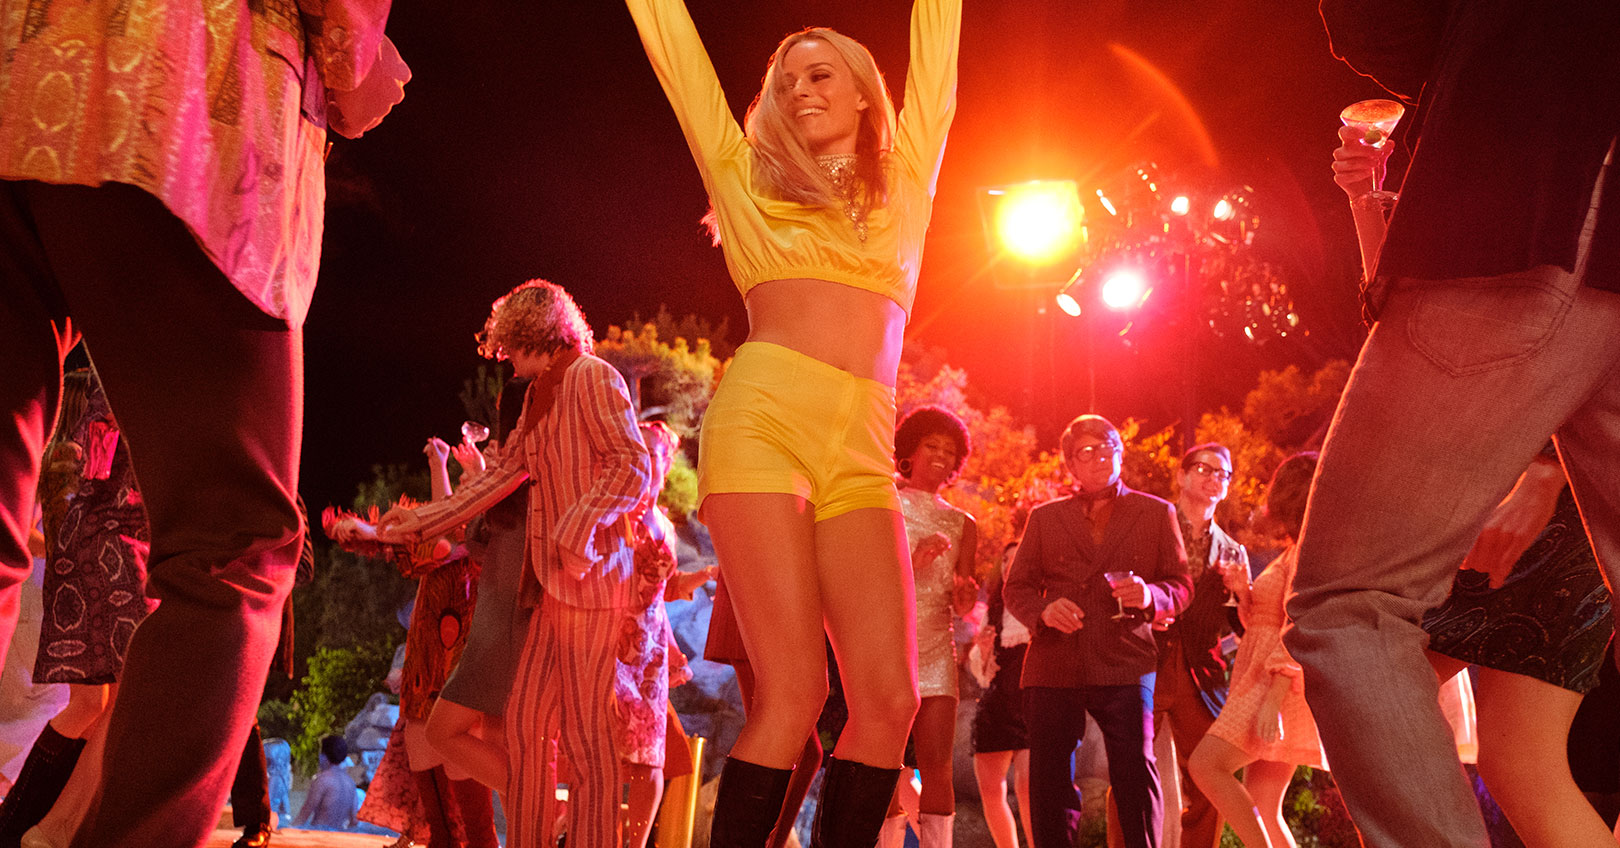 Once Upon a Time in... Hollywood - Margot Robbie